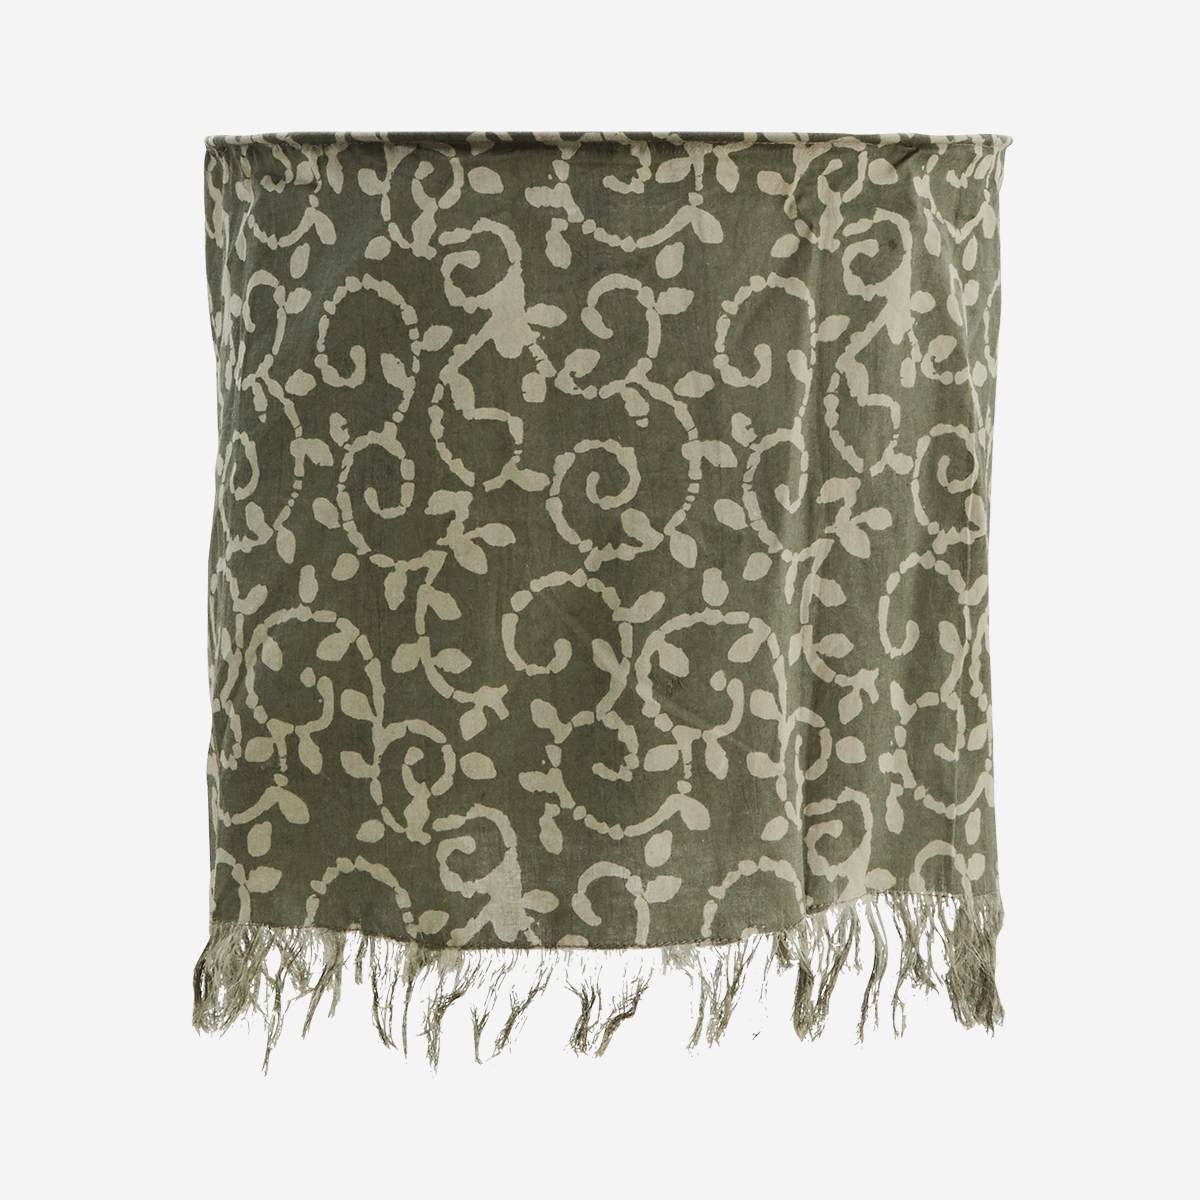 Floral Block Print Cotton Lampshade Petrol, Dusty Grey - Madam Stoltz